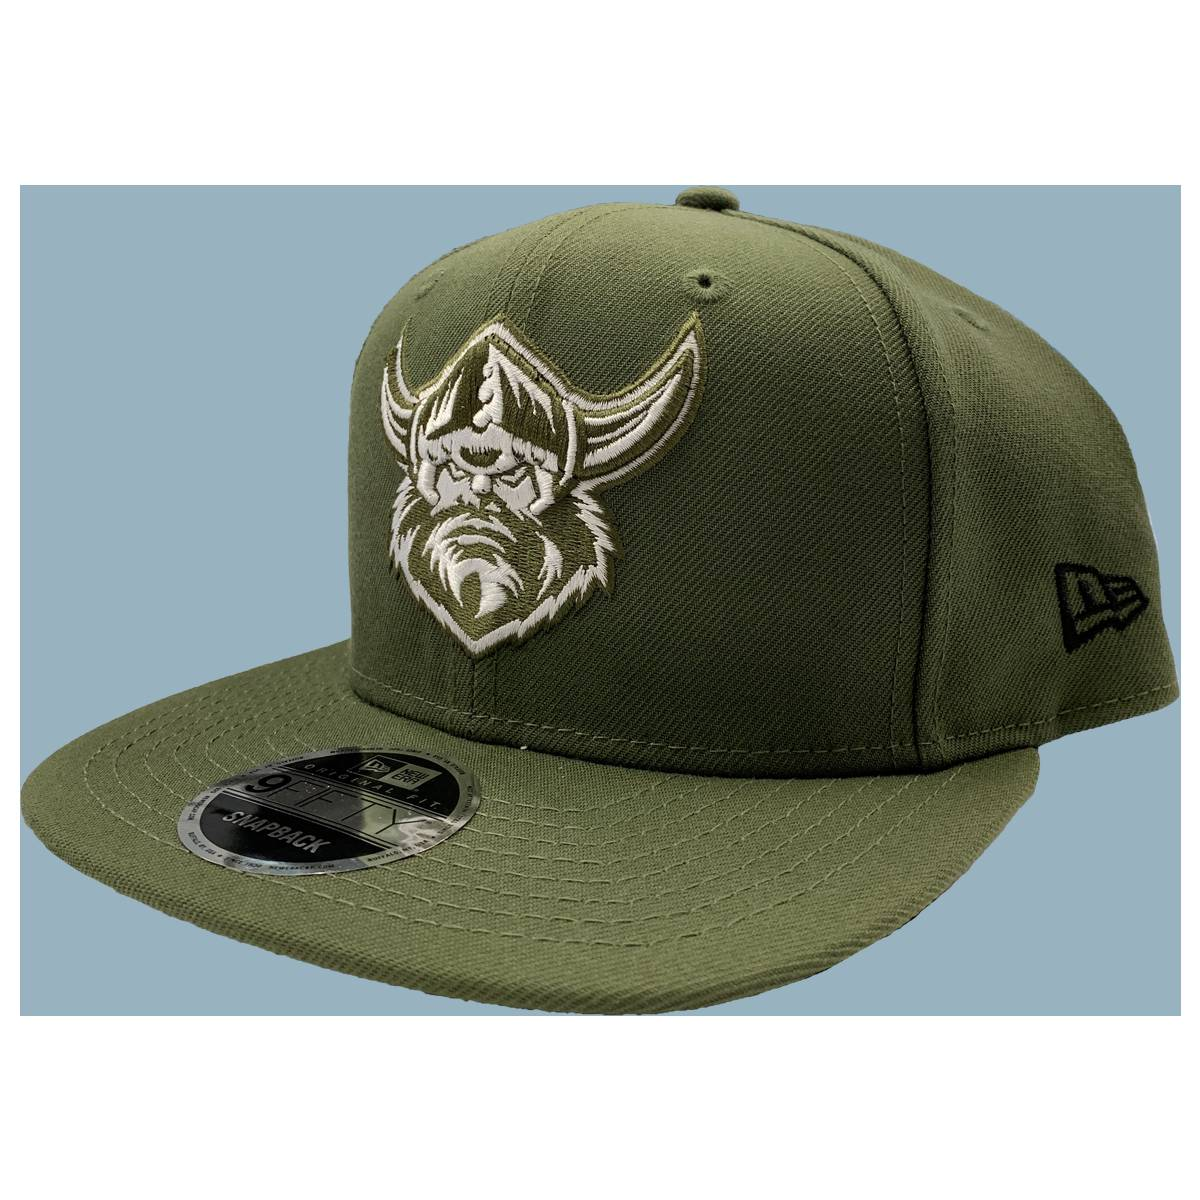 9FIFTY 'New Olive' Cap1